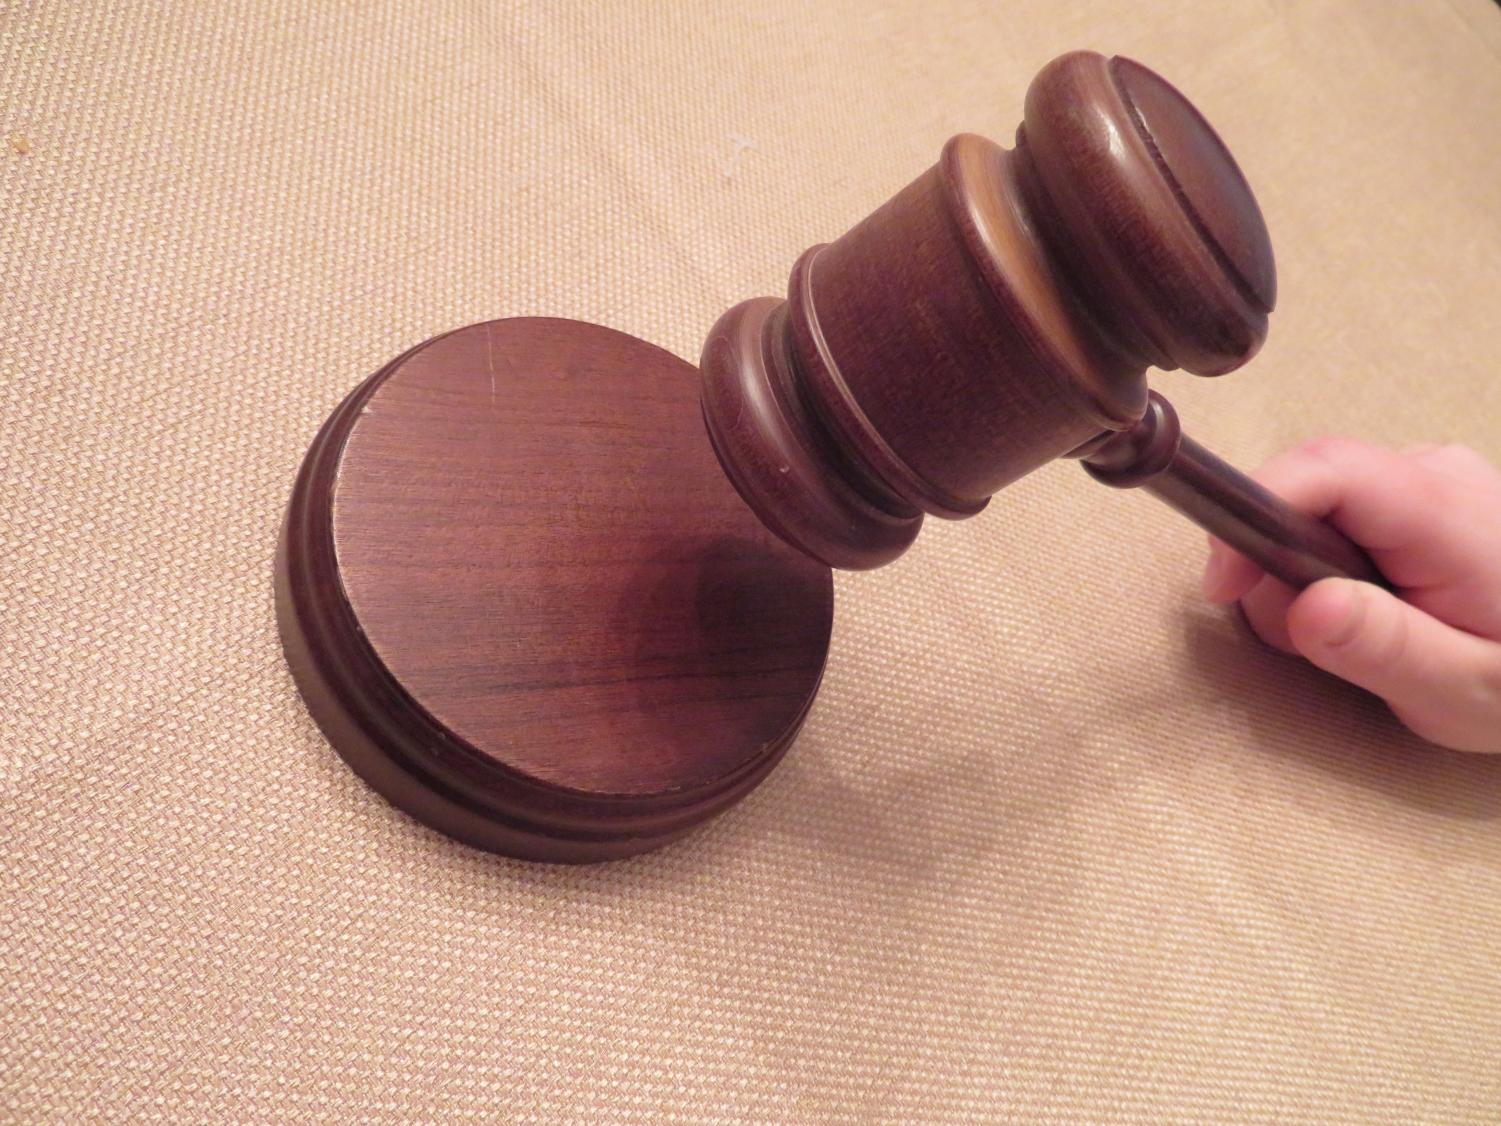 Supreme Court rules excessive bail as unethical.